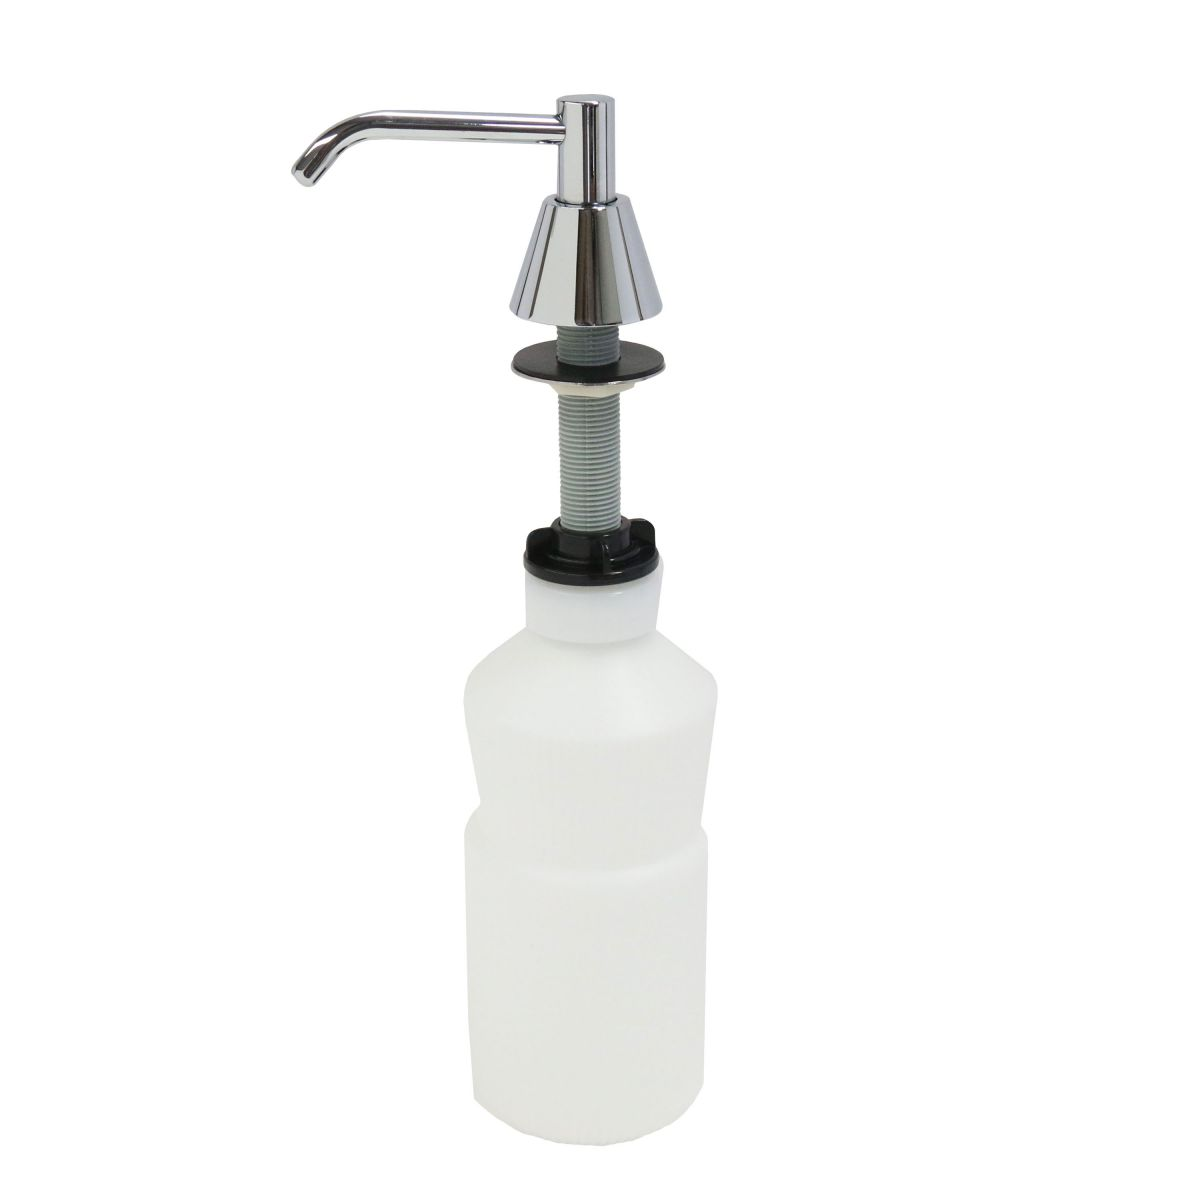 Countertop Liquid Soap Dispenser 102mm Spout